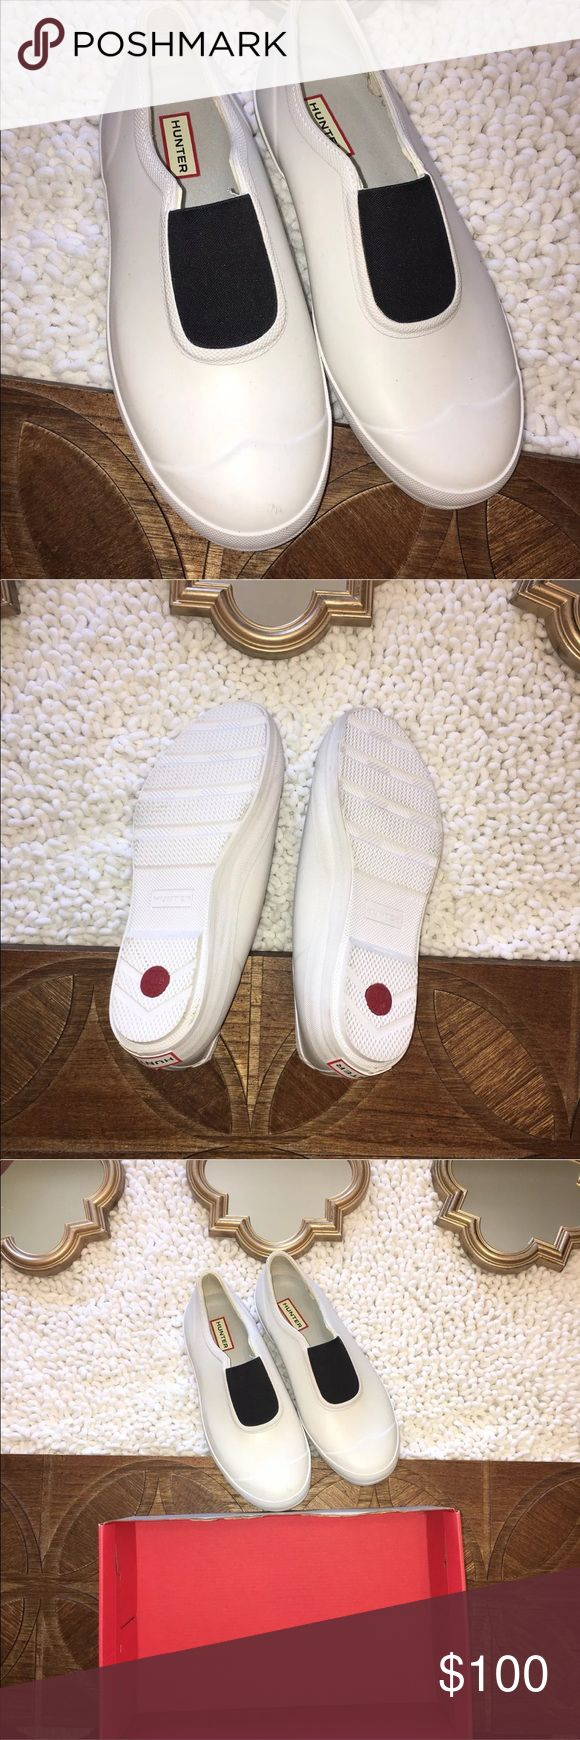 New Hunter White Plimsole Waterproof Rubber Shoes New with box Hunter Women's Slip On Rubber Shoes. White with black center. Size 10. Retail: $115.00 Hunter Shoes